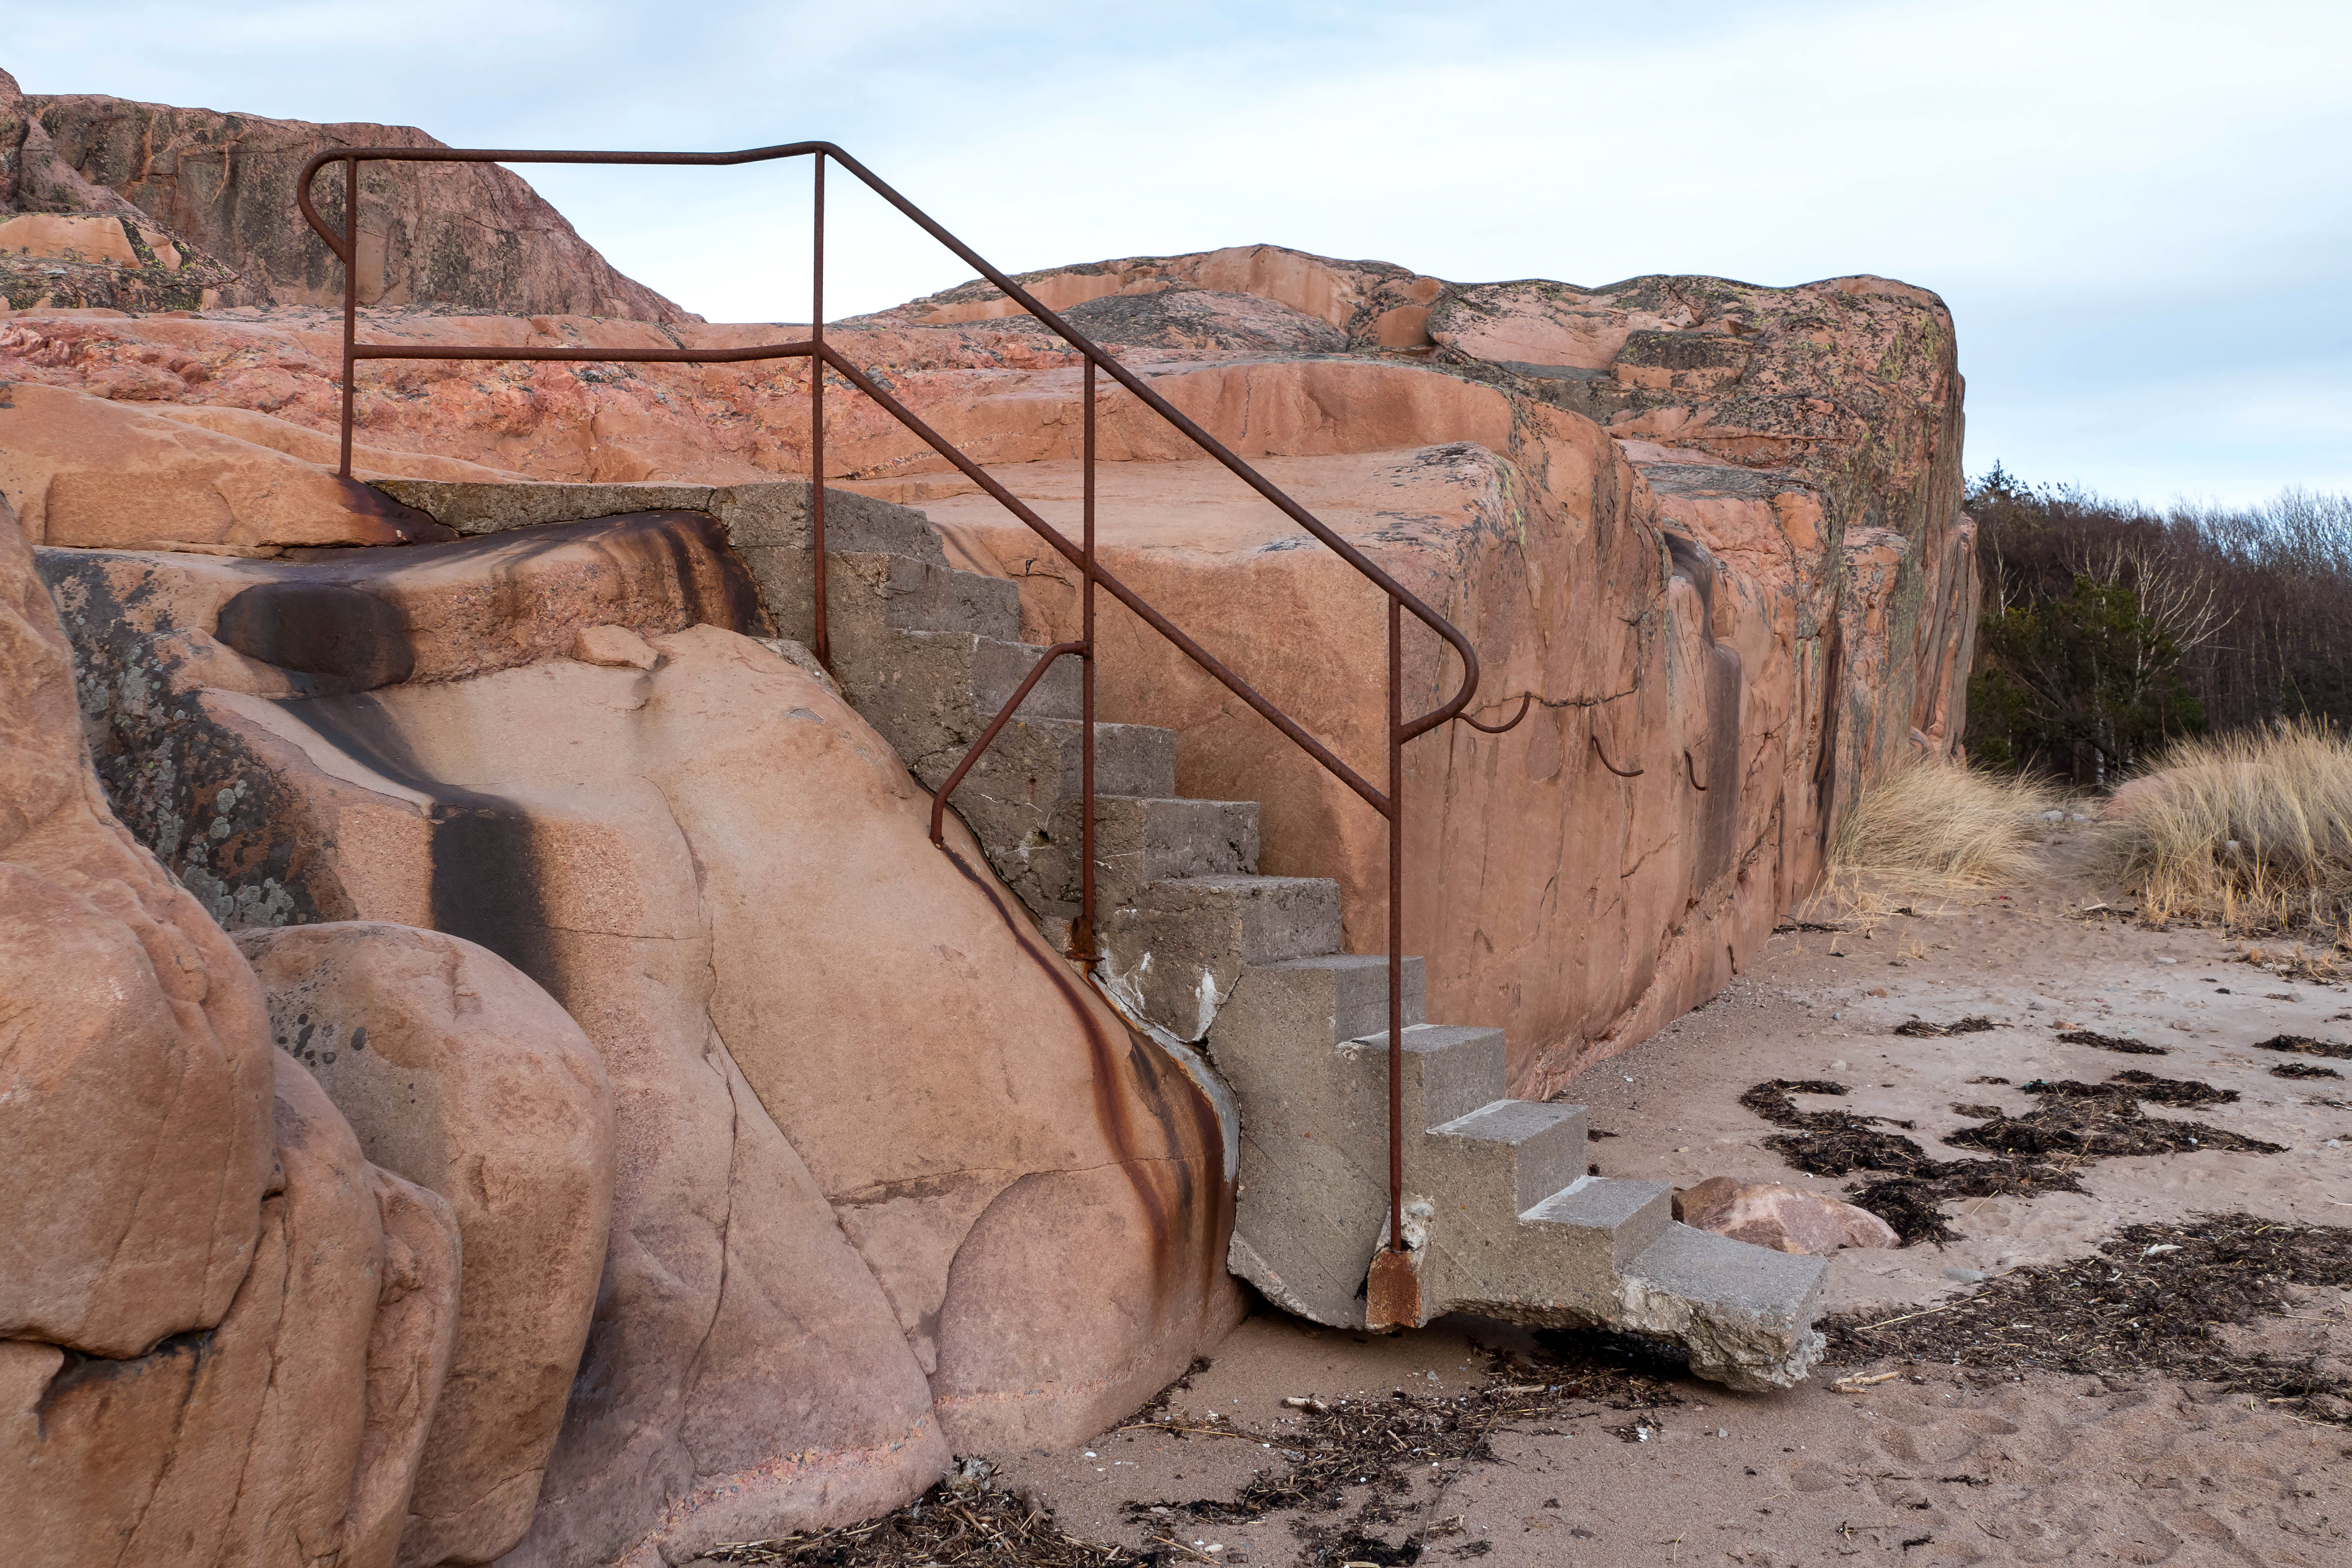 holder of this work, hereby publish it under the following license: English Concrete stairs in Fiskebäcksvik author name string: W.carter URL: https://commons